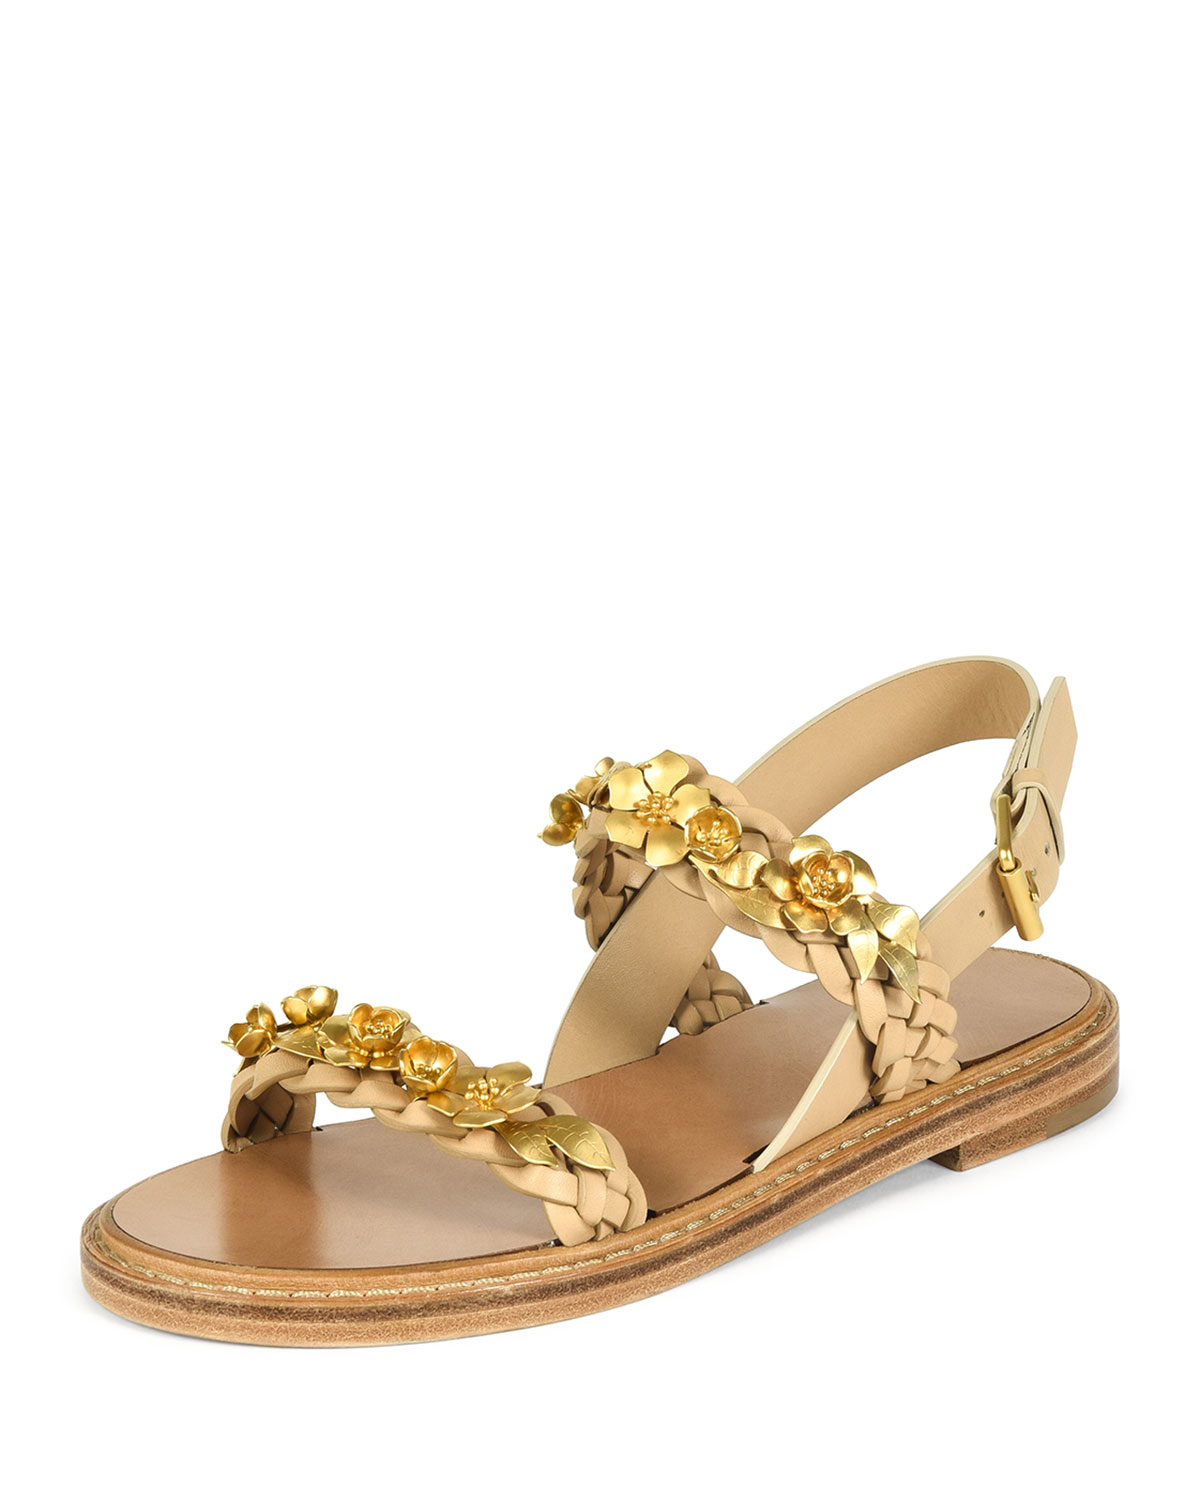 Valentino Floral Thong Sandals cheap sale finishline genuine online free shipping many kinds of LYInK5Fh